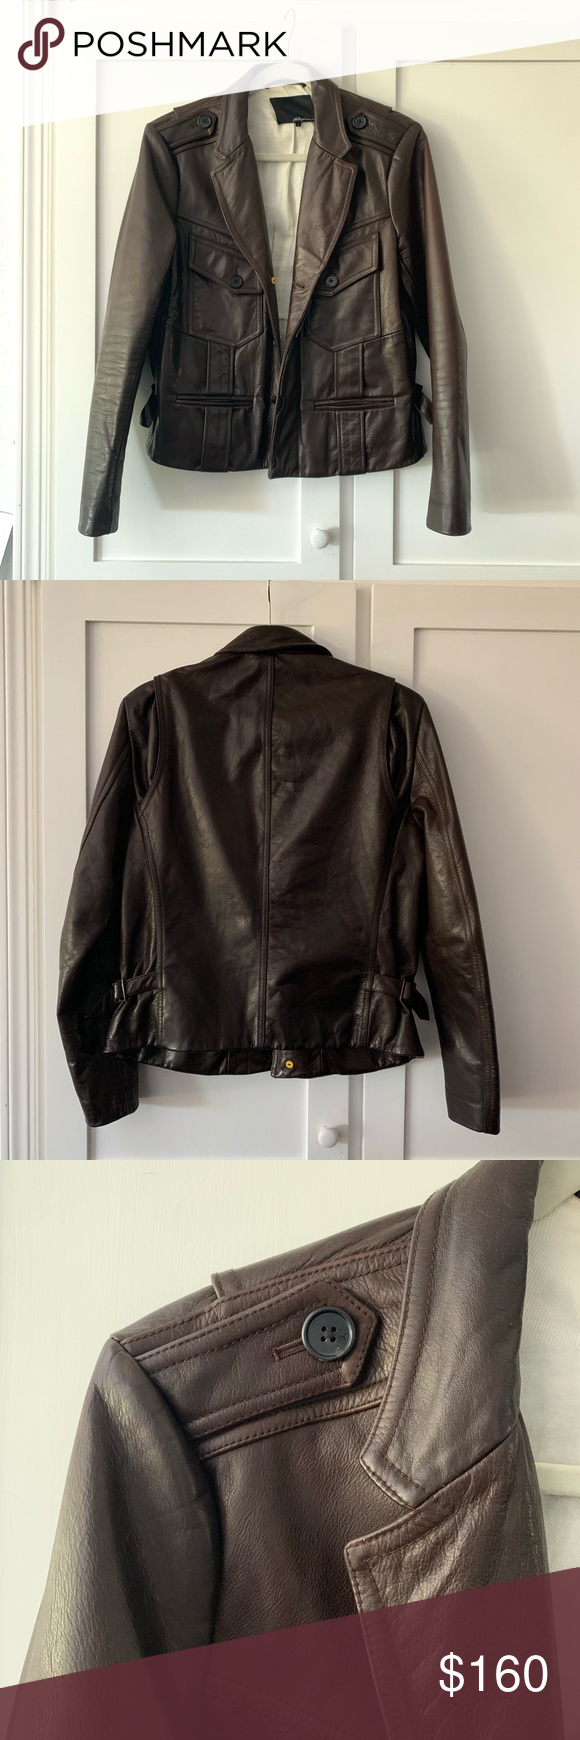 Phillip Lim Brown Leather Jacket Brown Leather Jacket Leather Jacket Clothes Design [ 1740 x 580 Pixel ]